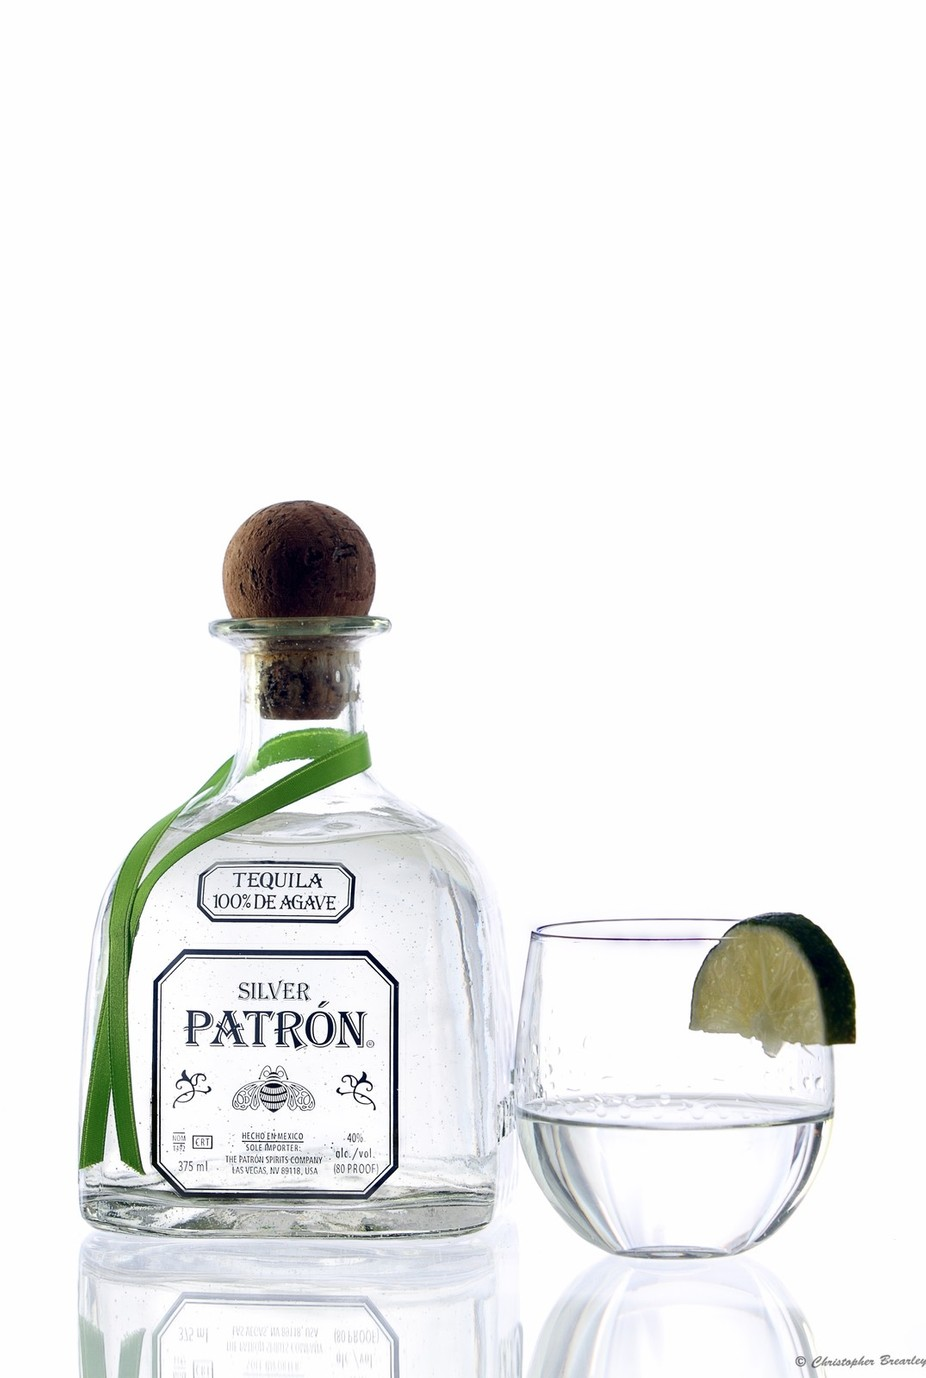 Patron Silver tequila by christopherbrearley - Commercial Shots Photo Contest 2018